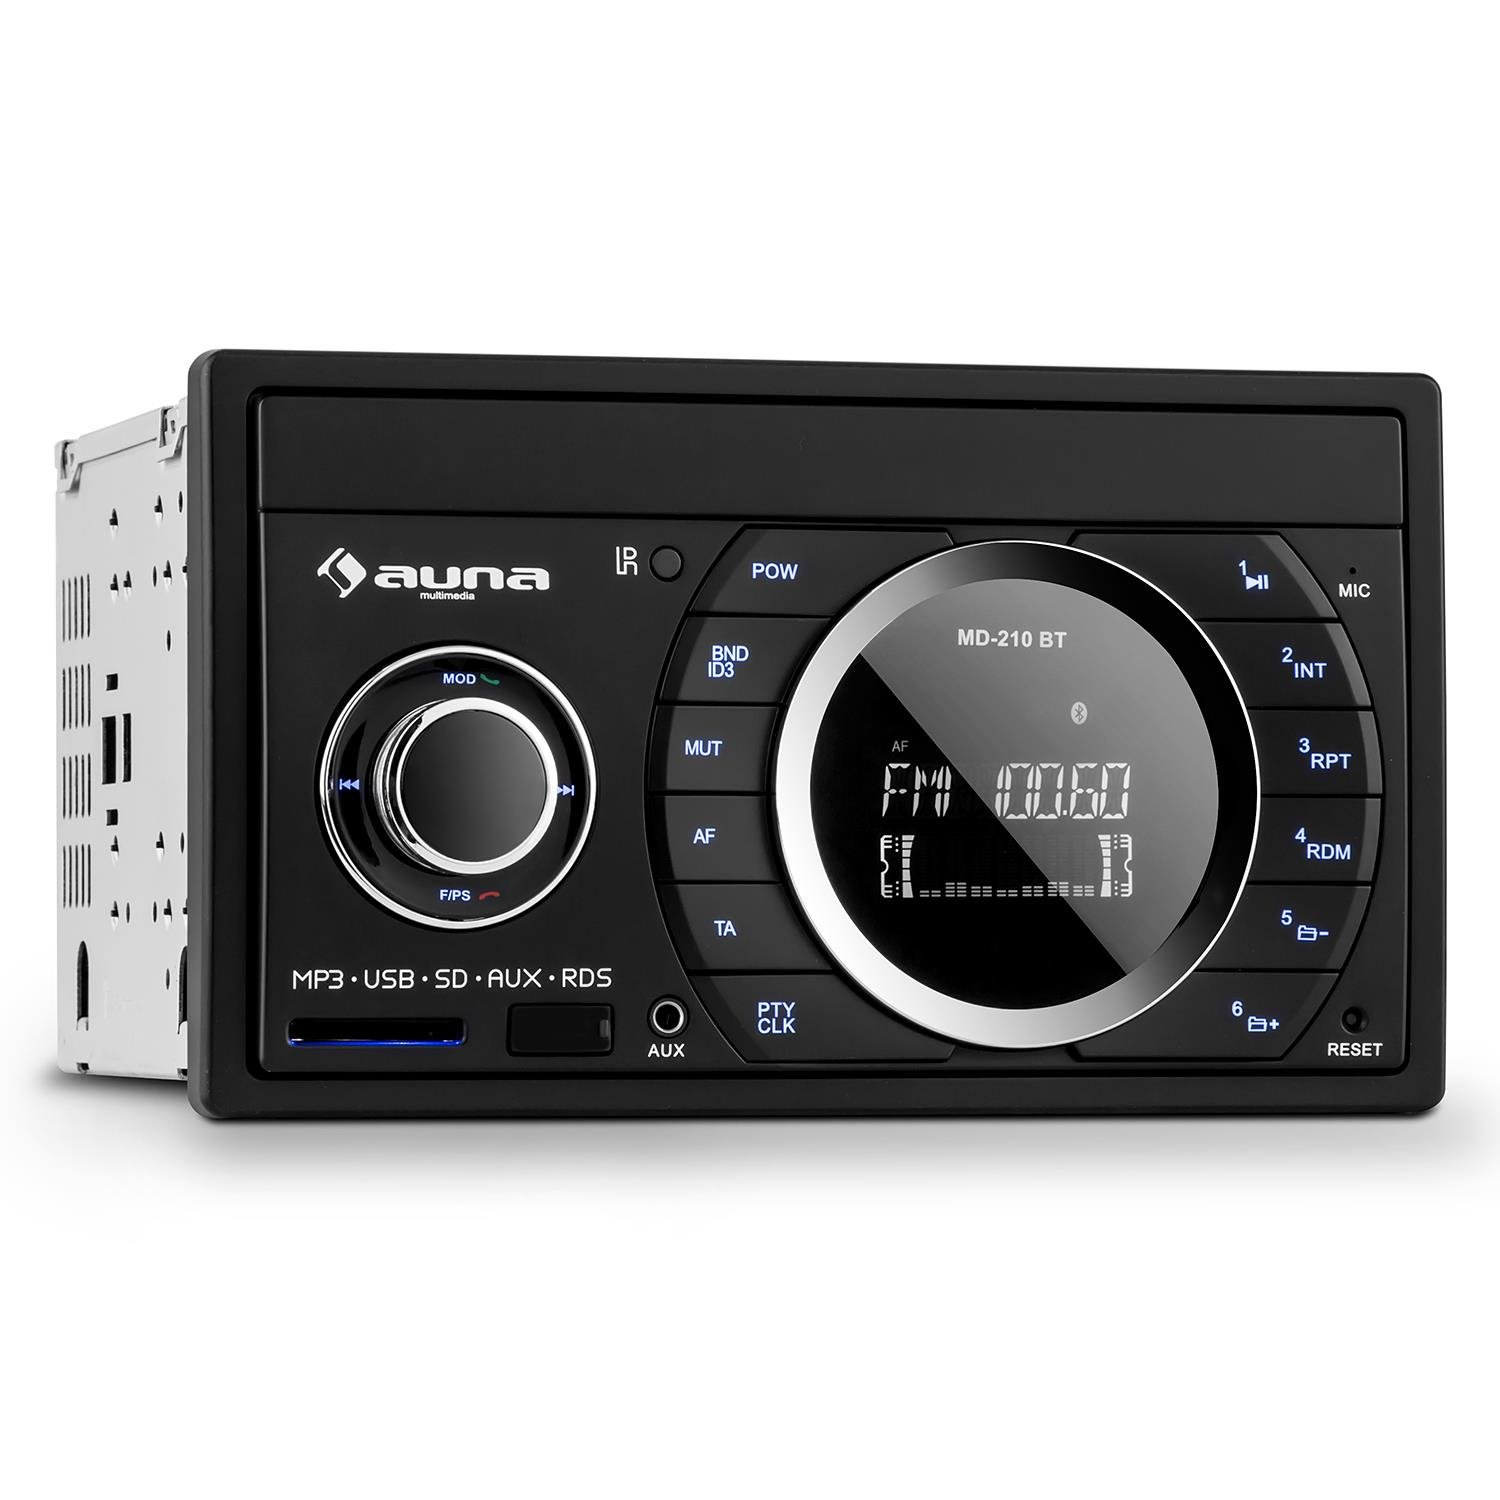 auna MD-210 BT Doppel Din Autoradio Bluetooth MP3: Amazon.de: Elektronik